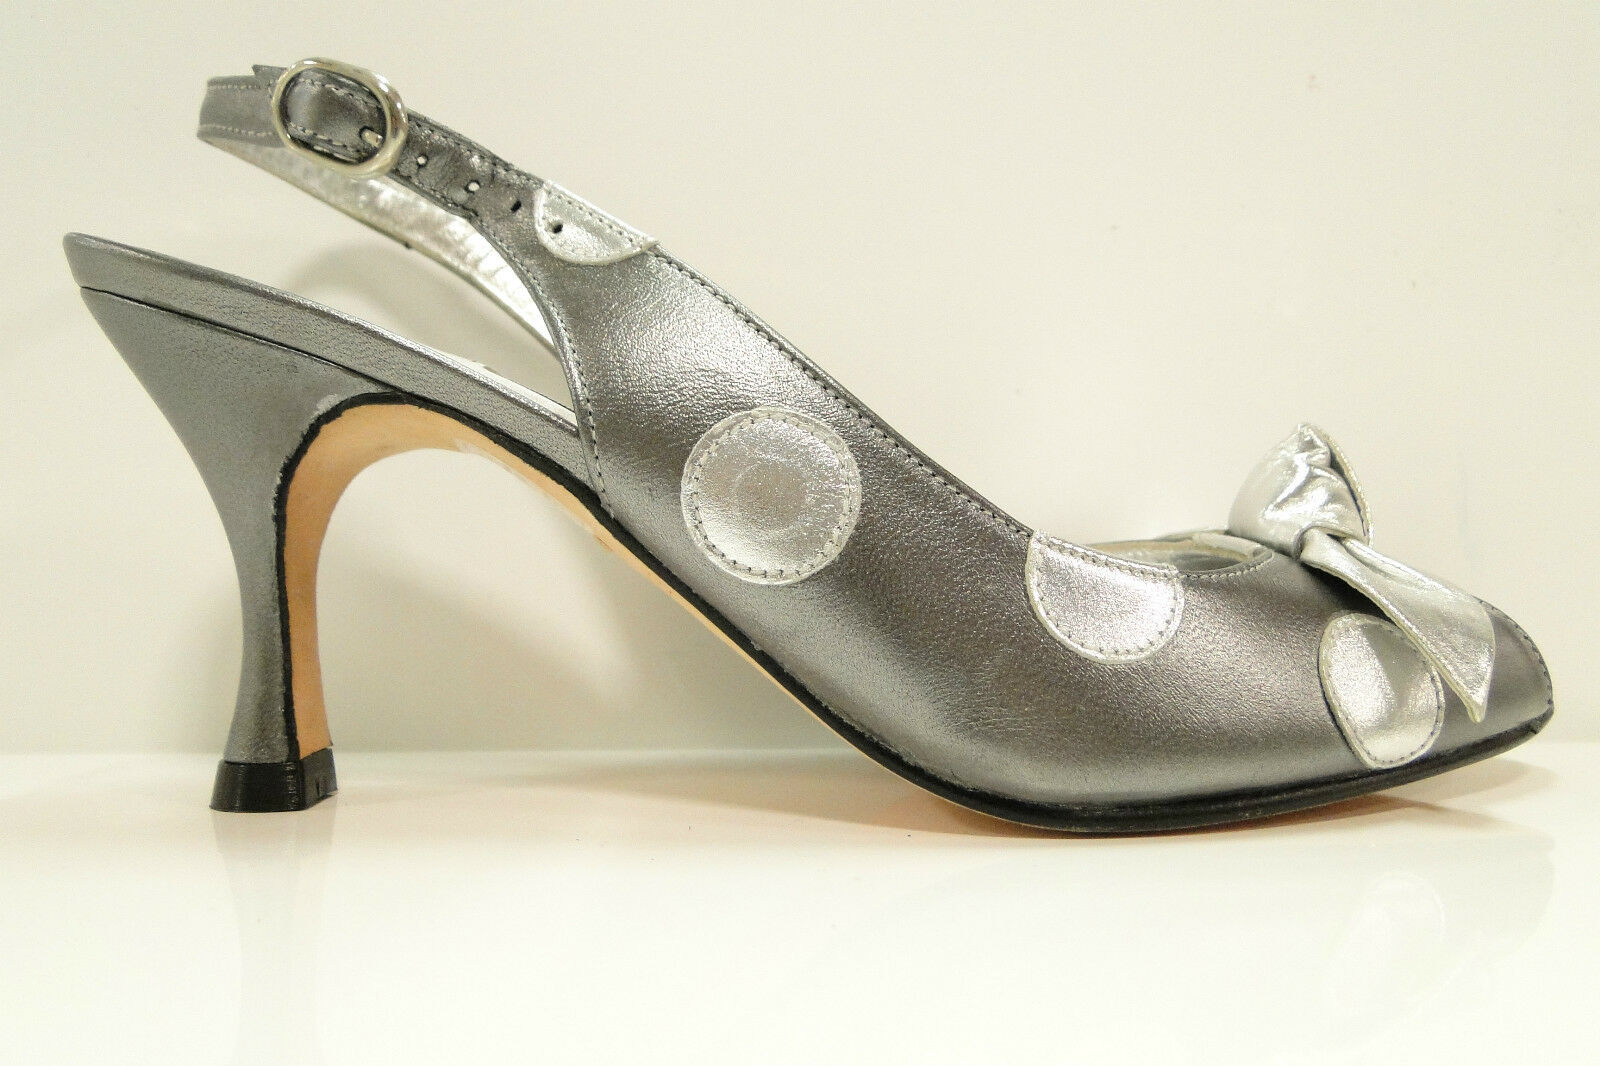 HB Espana Gitana Slingback Peep Toe Heel Court Shoes Grey/Sil UK3.5 By HB Shoes